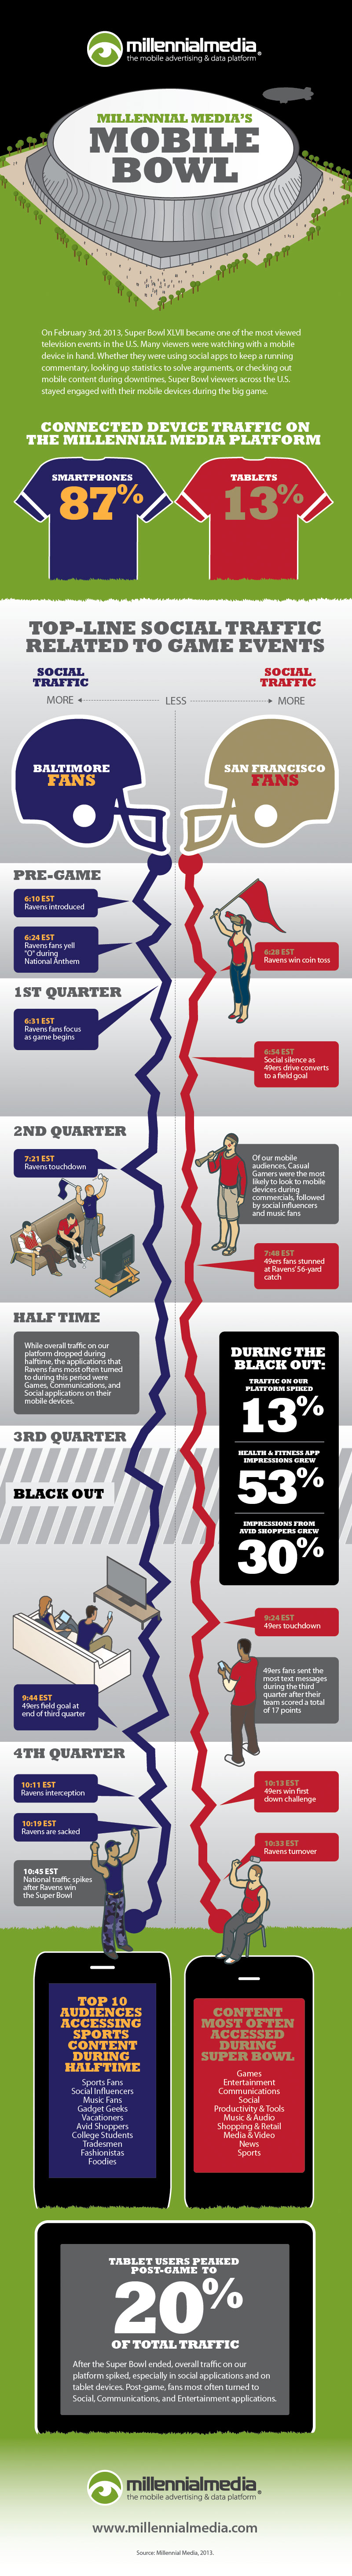 Super Bowl 2013 Mobile Activity-Infographic